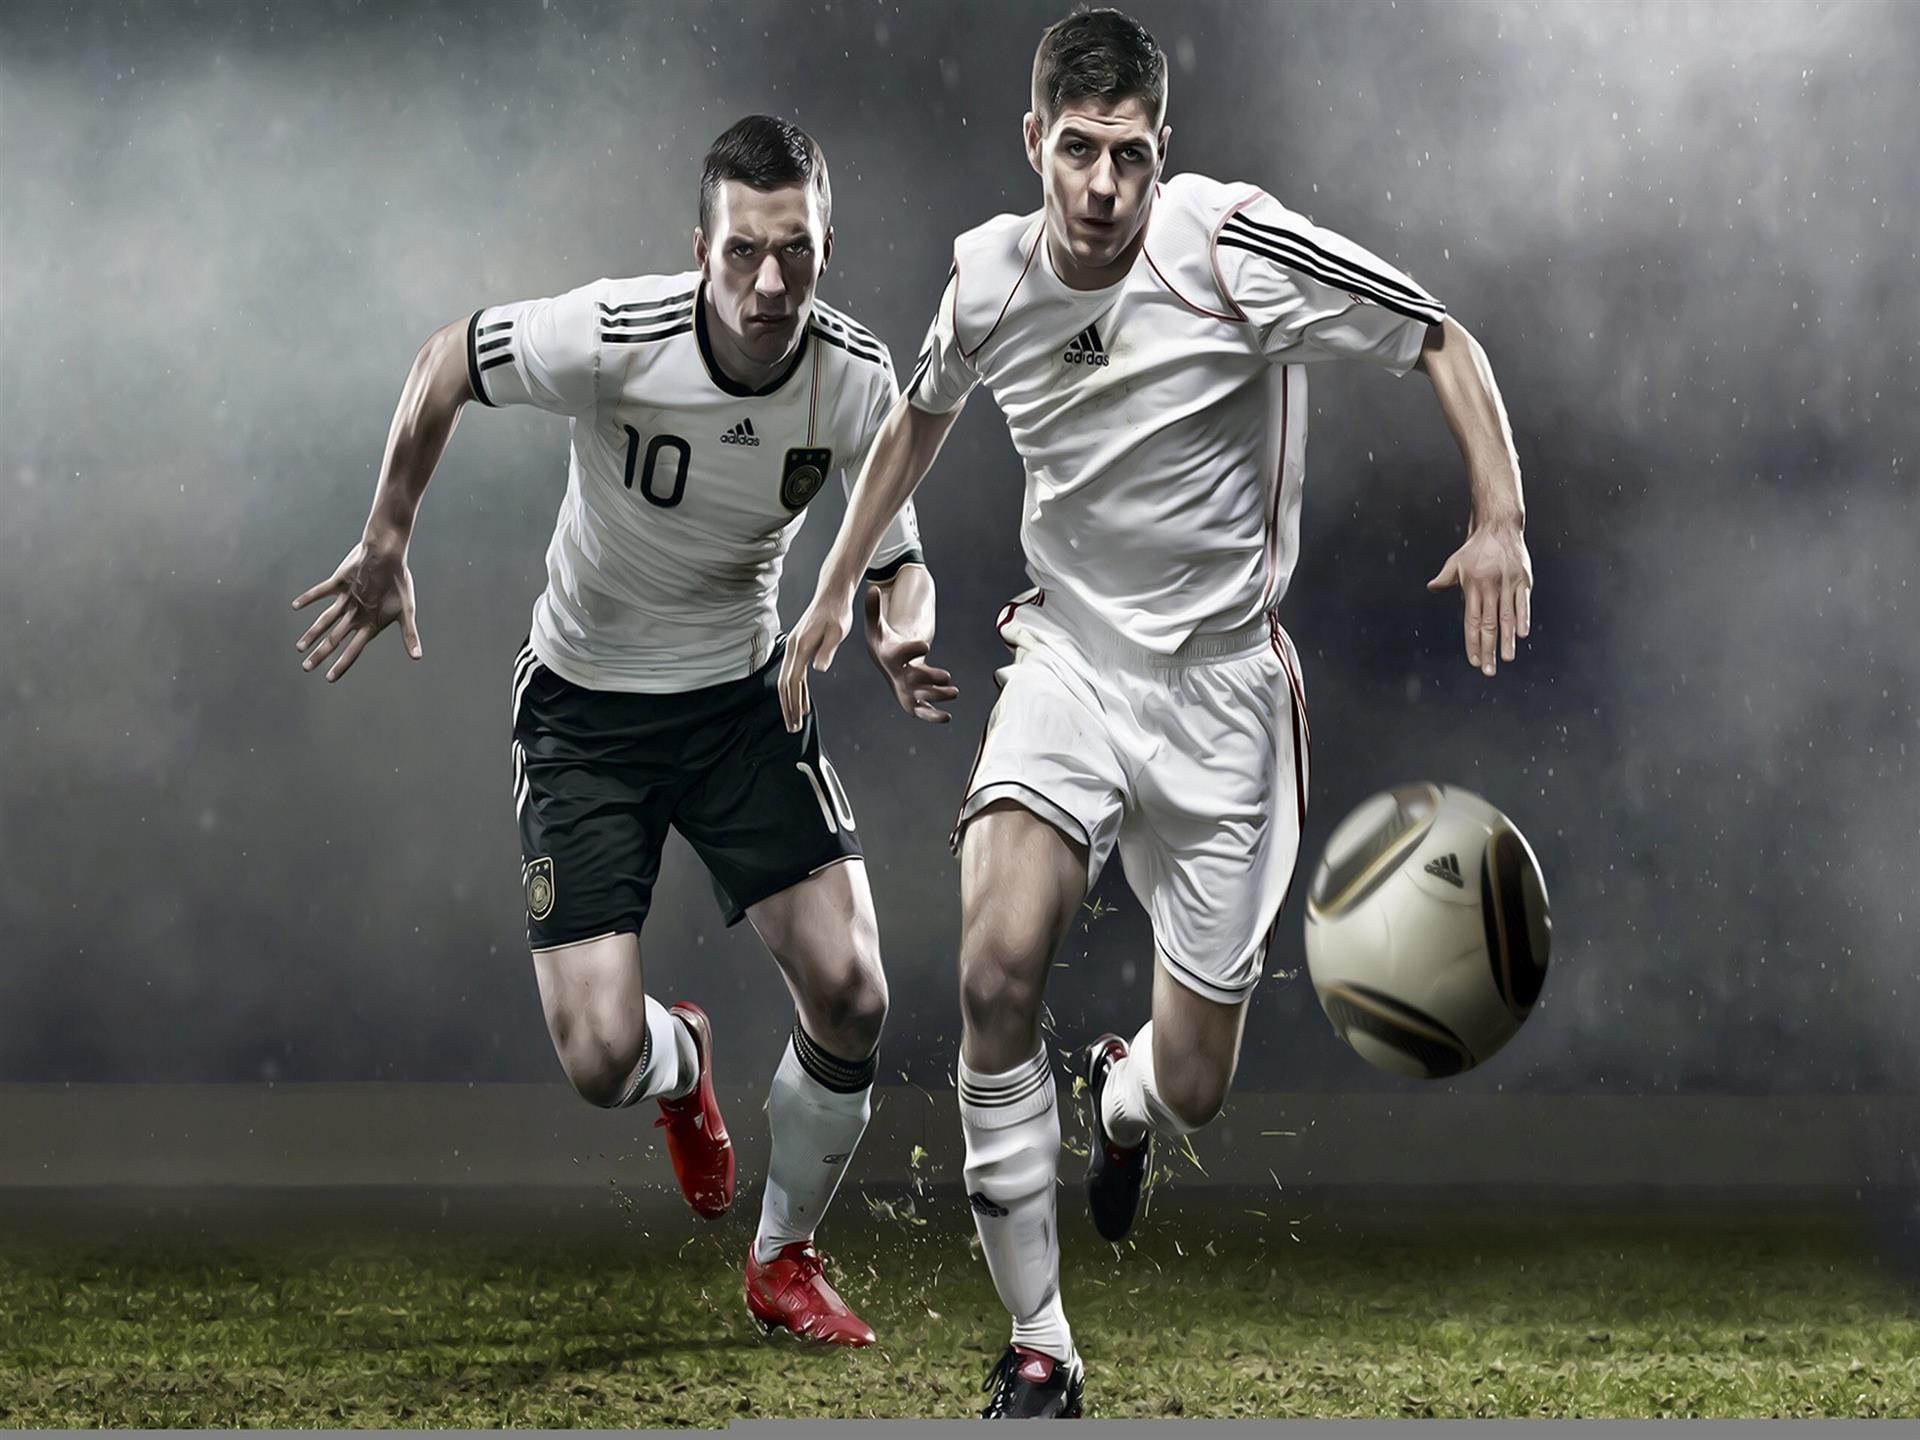 1920x1440 3D Football Players Play Game High Quality Photos